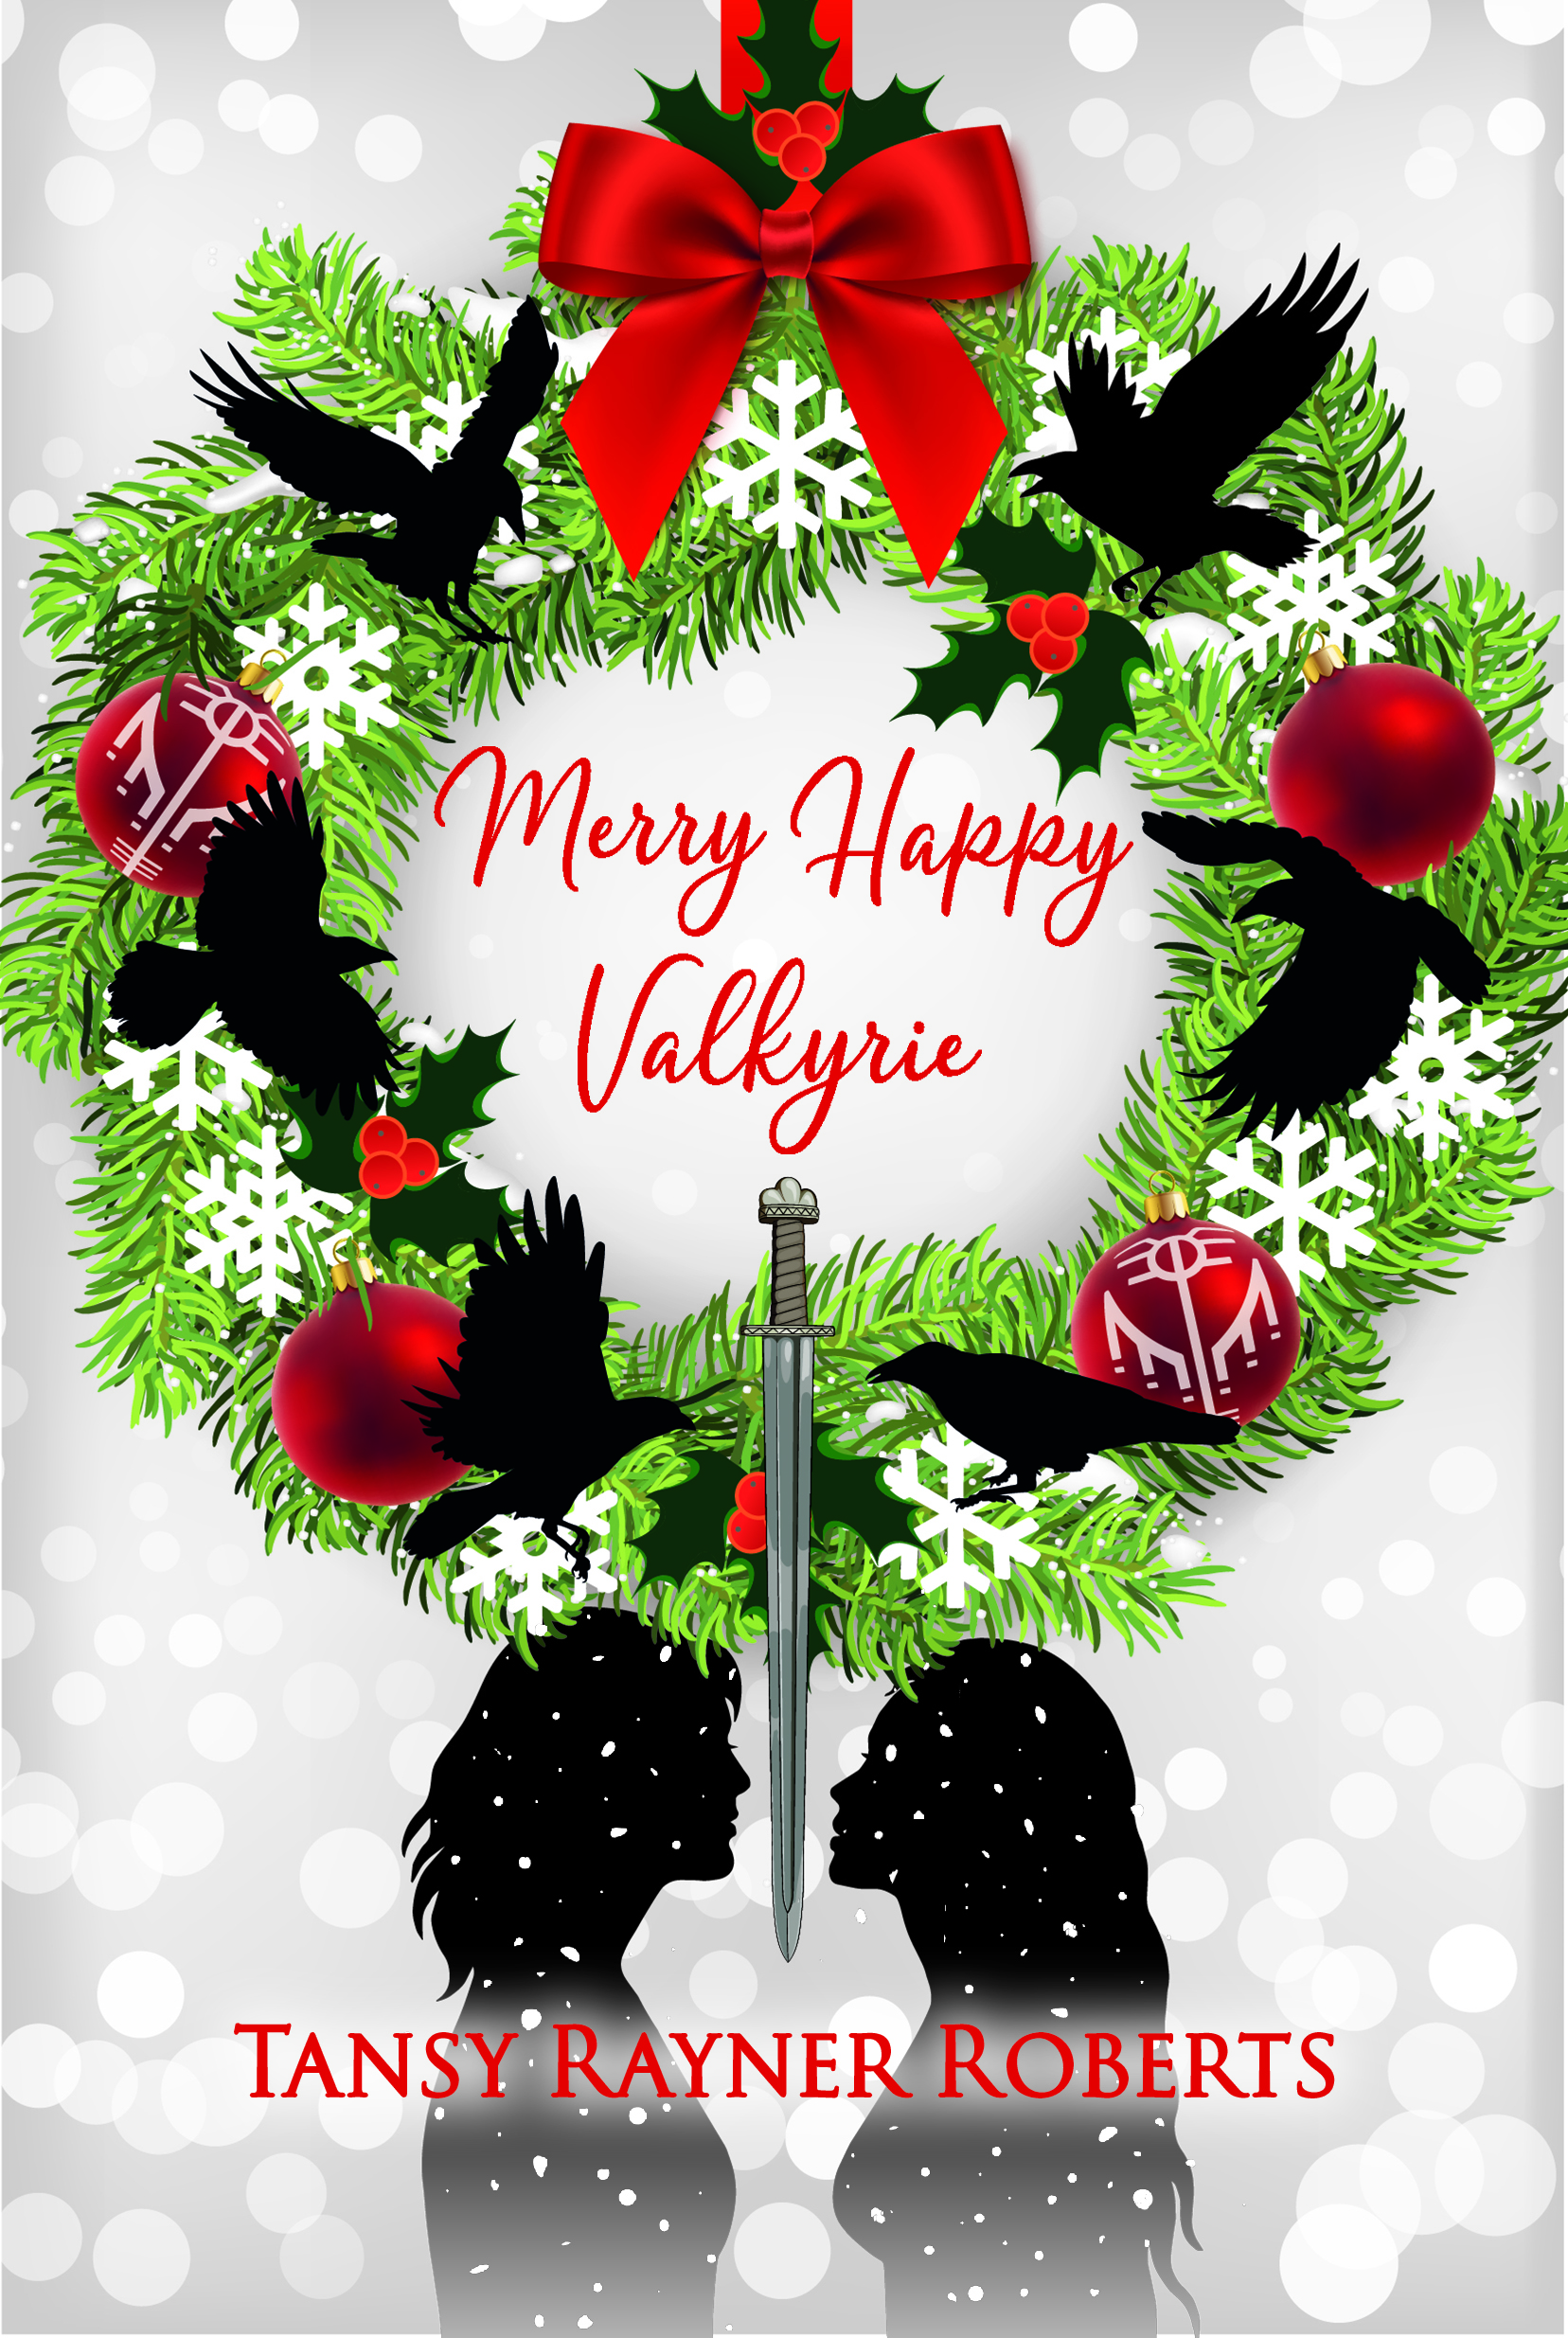 Merry, Happy Valkyrie by Tansy Rayner Roberts - Cover Reveal!